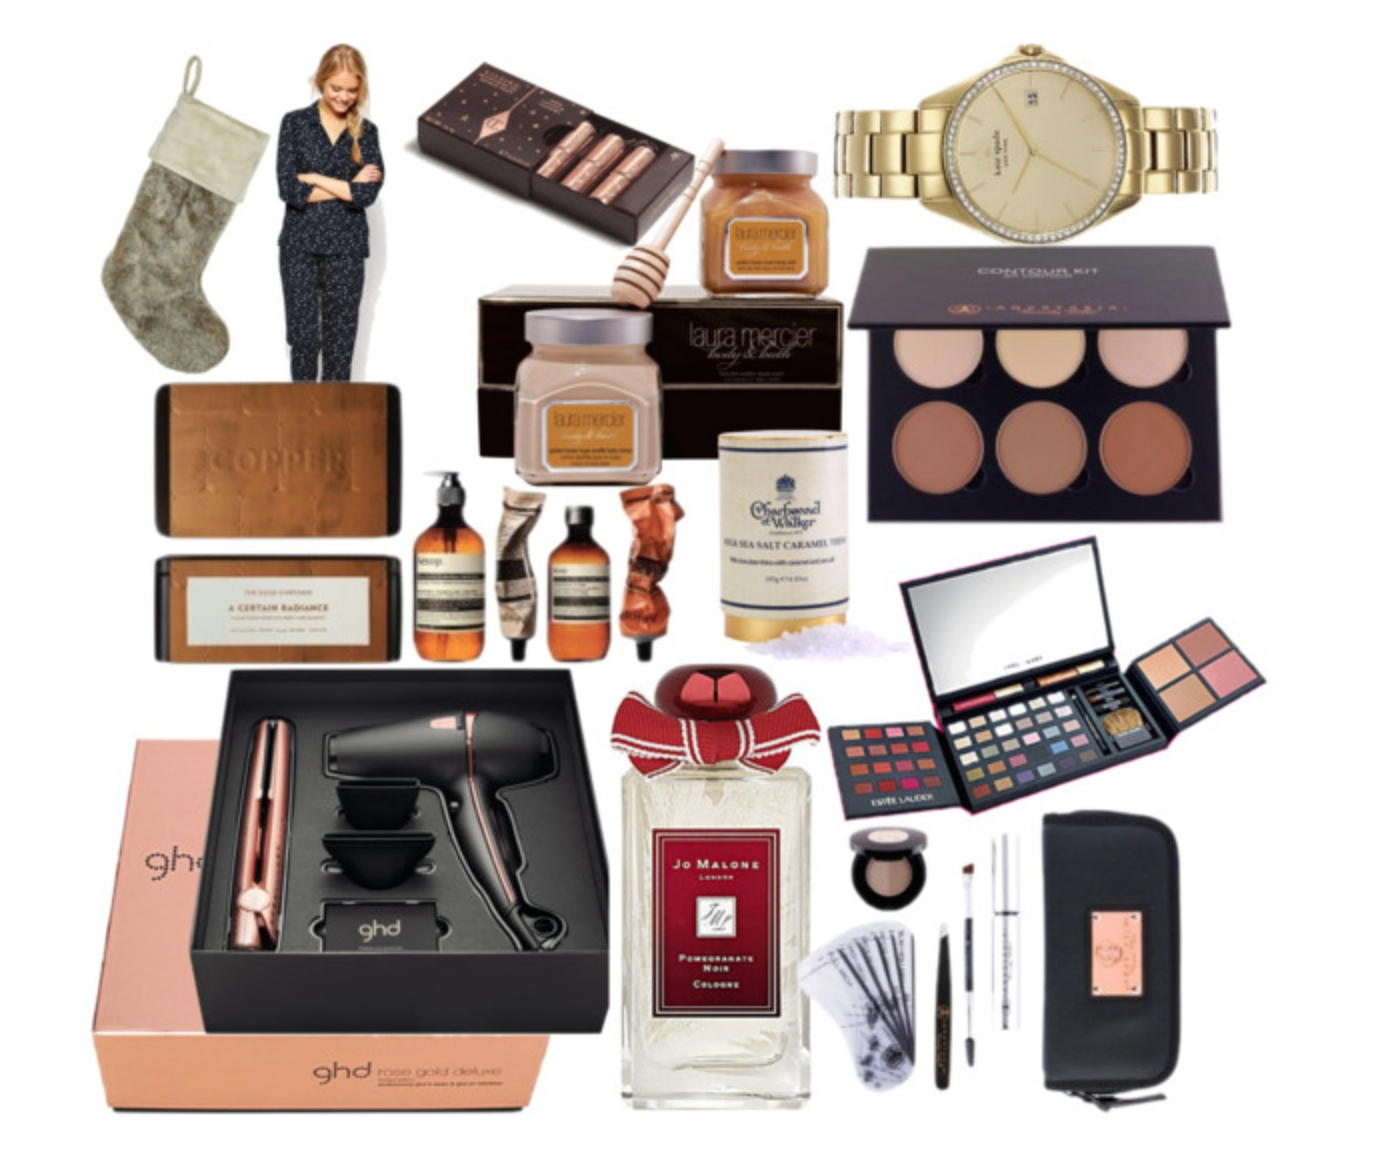 Christmas Gift Guide Luxury Gifts Stocking Fillers For Her